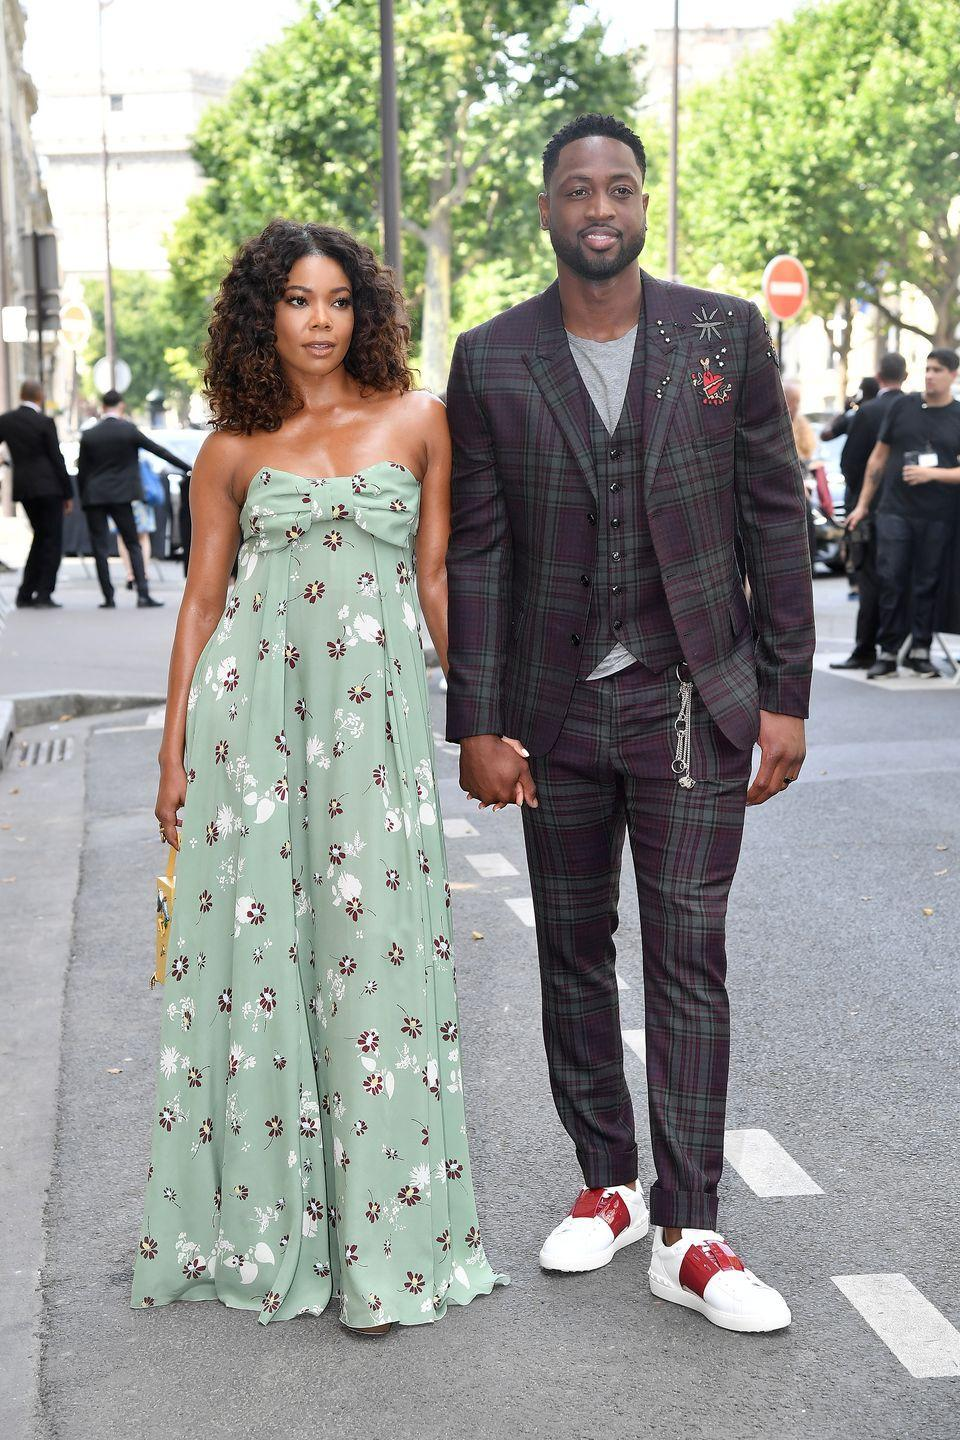 """<p>Even Instagram's favorite couple has had their struggles. When the two first got together in 2009, Dwyane was in the middle of divorcing his first wife and Gabrielle was quickly labeled the mistress, according to <em><a href=""""https://www.eonline.com/news/927278/legal-drama-a-break-up-and-heart-wrenching-tragedy-how-gabrielle-union-and-dwyane-wade-emerged-stronger-than-ever"""" rel=""""nofollow noopener"""" target=""""_blank"""" data-ylk=""""slk:E! News"""" class=""""link rapid-noclick-resp"""">E! News</a></em>. </p><p>Just 10 days after their 2013 engagement news broke, it was revealed that Dwyane fathered a son with another woman. But the two stayed together and continued to the plan their lavish Miami wedding. They have been married ever since.</p>"""